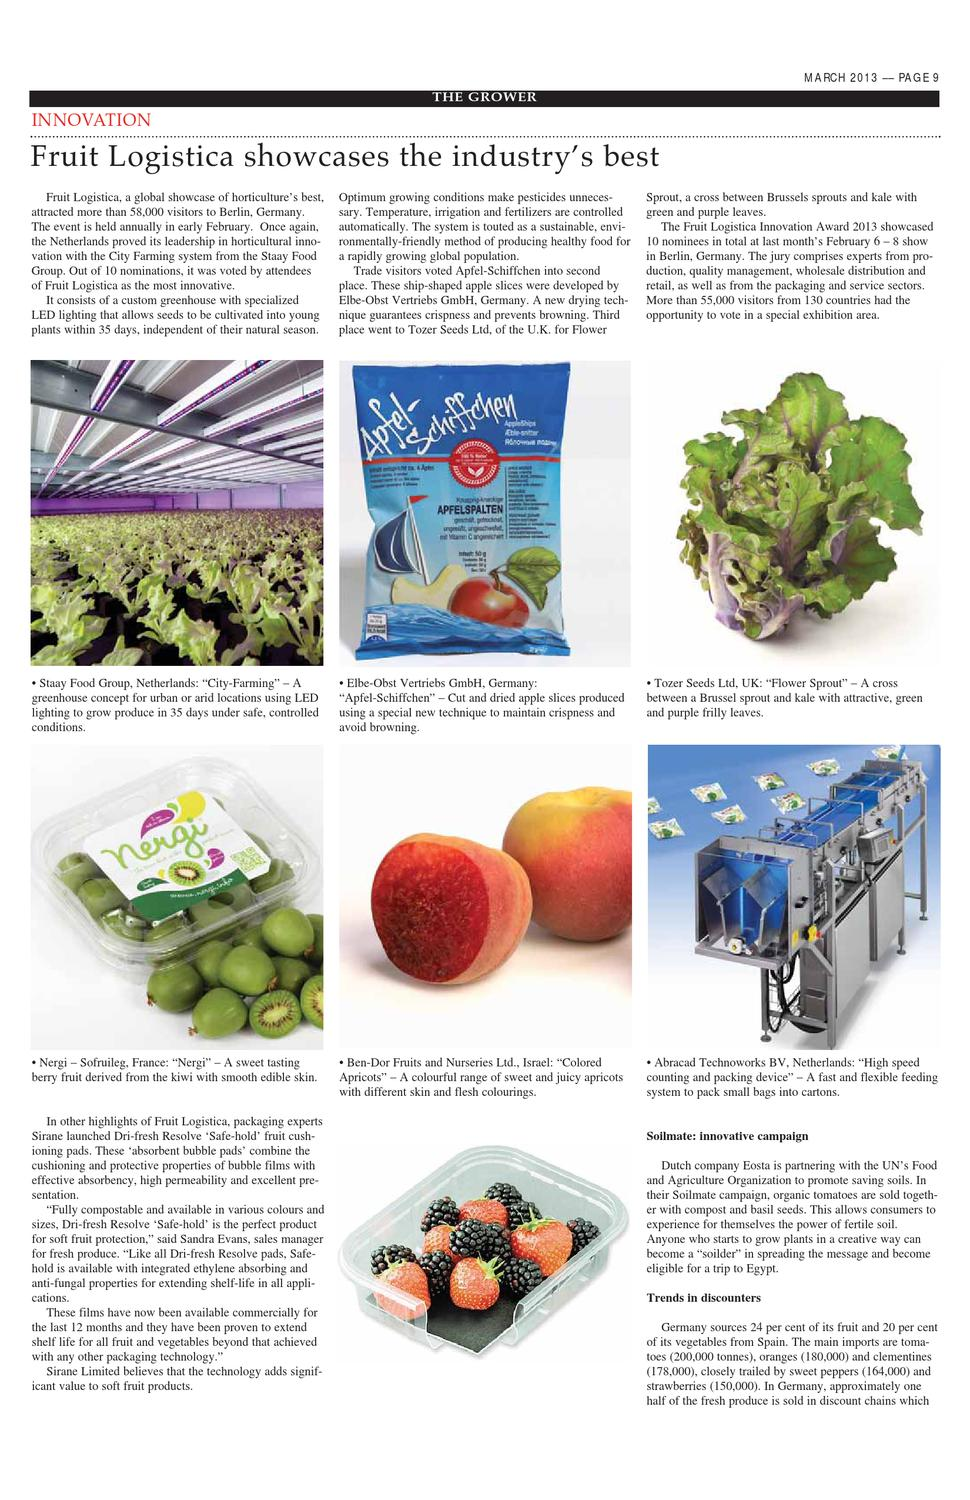 The Grower March 2013 by The Grower - issuu